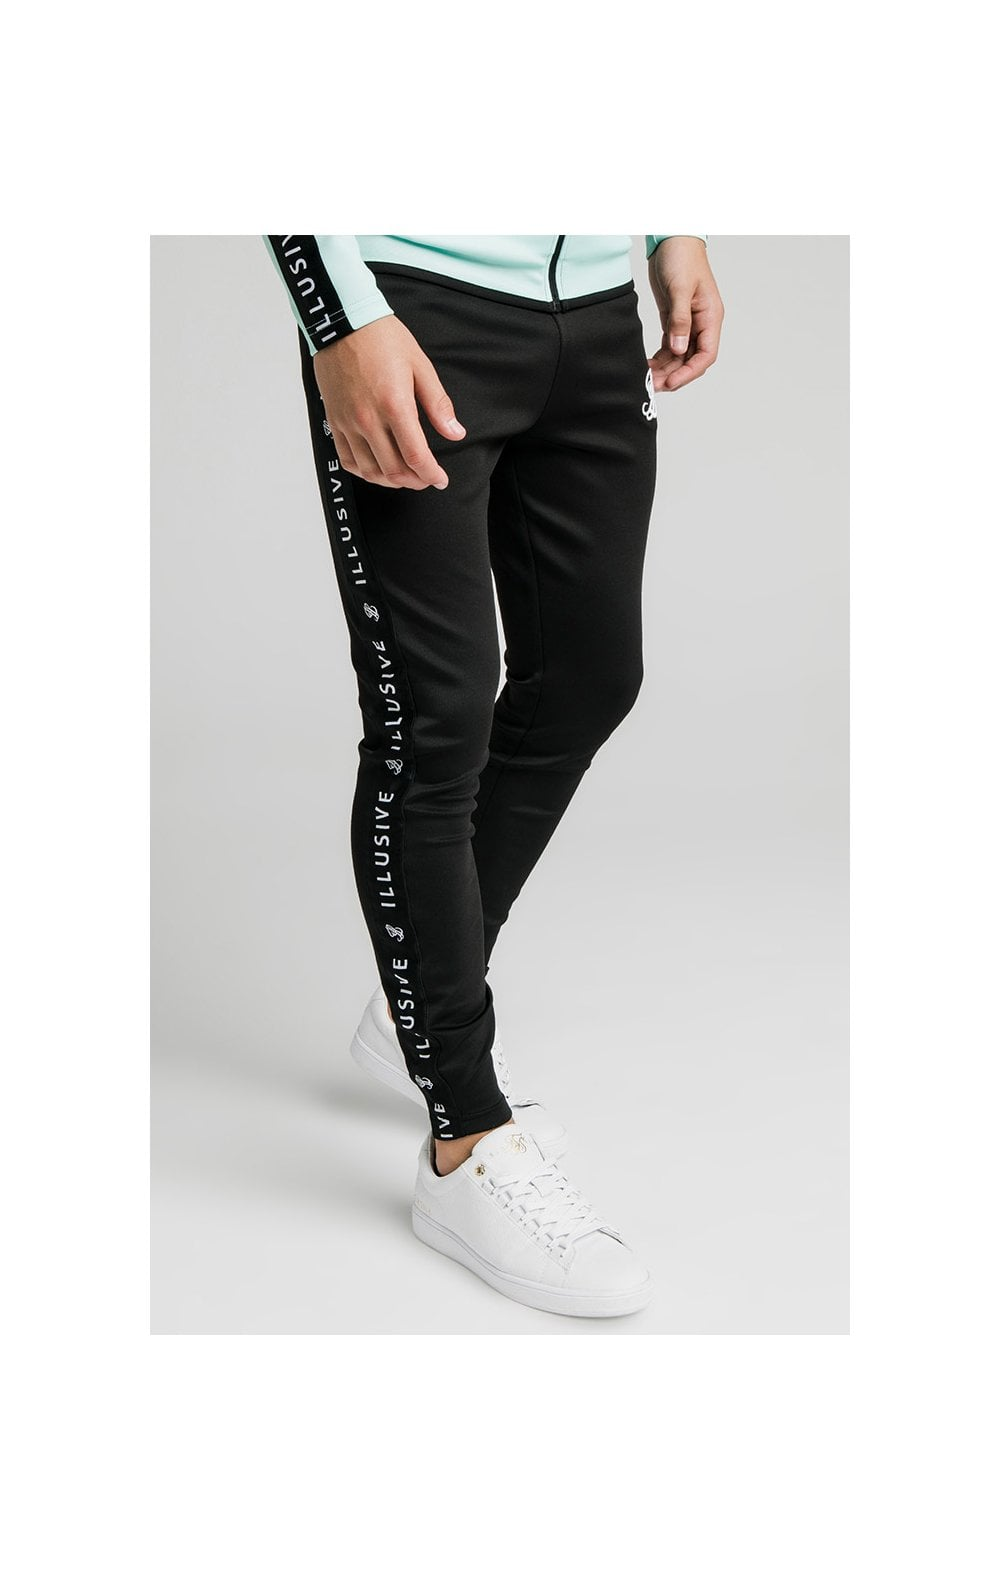 Load image into Gallery viewer, Illusive London Tape Pants - Black (4)